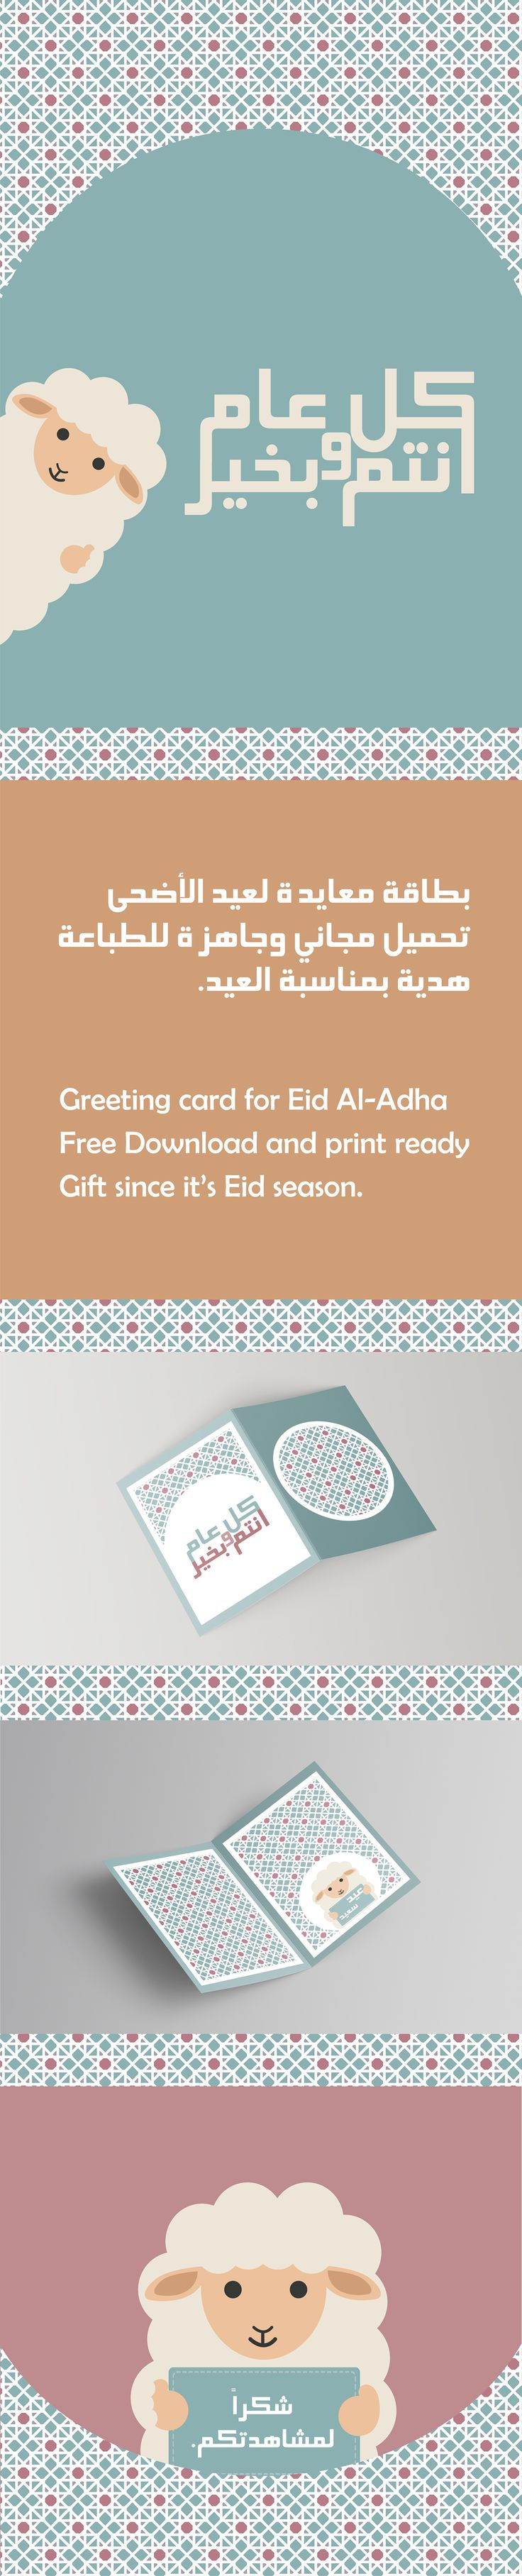 Eid Greeting card | Free download on Behance